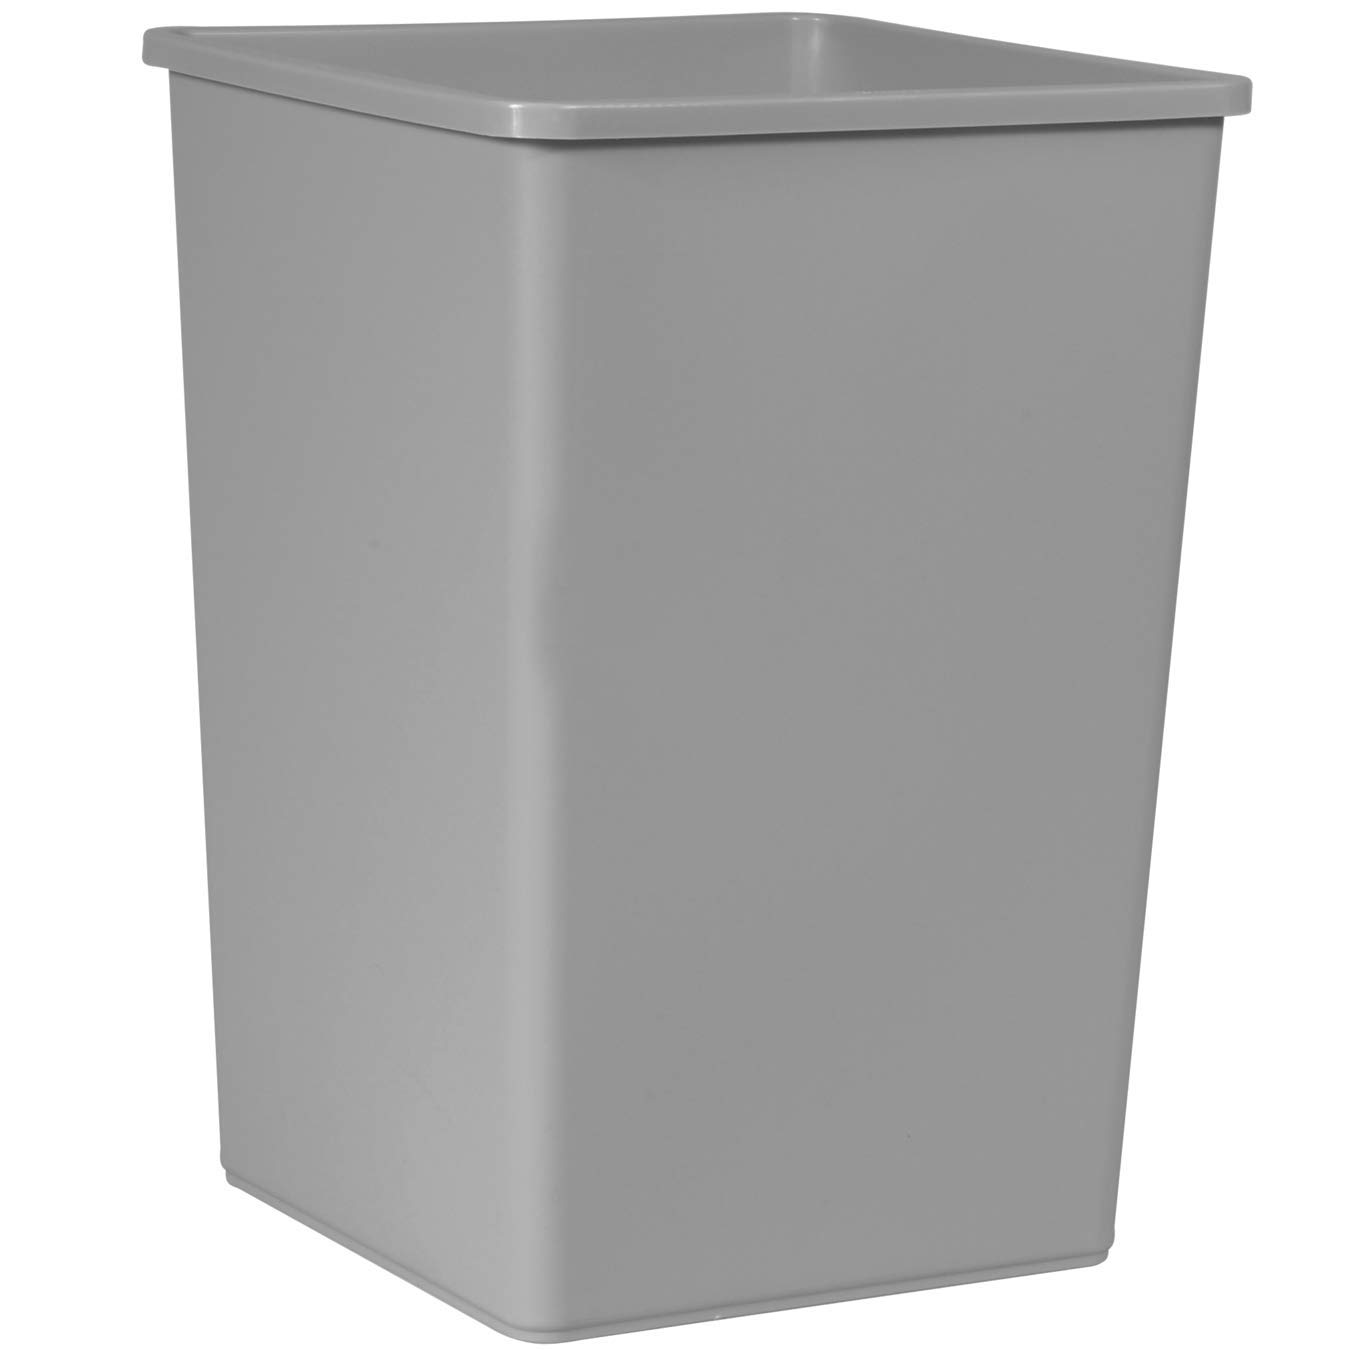 Rubbermaid Commercial Products 35-Gallon Untouchable Square Trash/Garbage Can for Offices/Stores/Restaurants, Gray (FG395800GRAY) by Rubbermaid Commercial Products